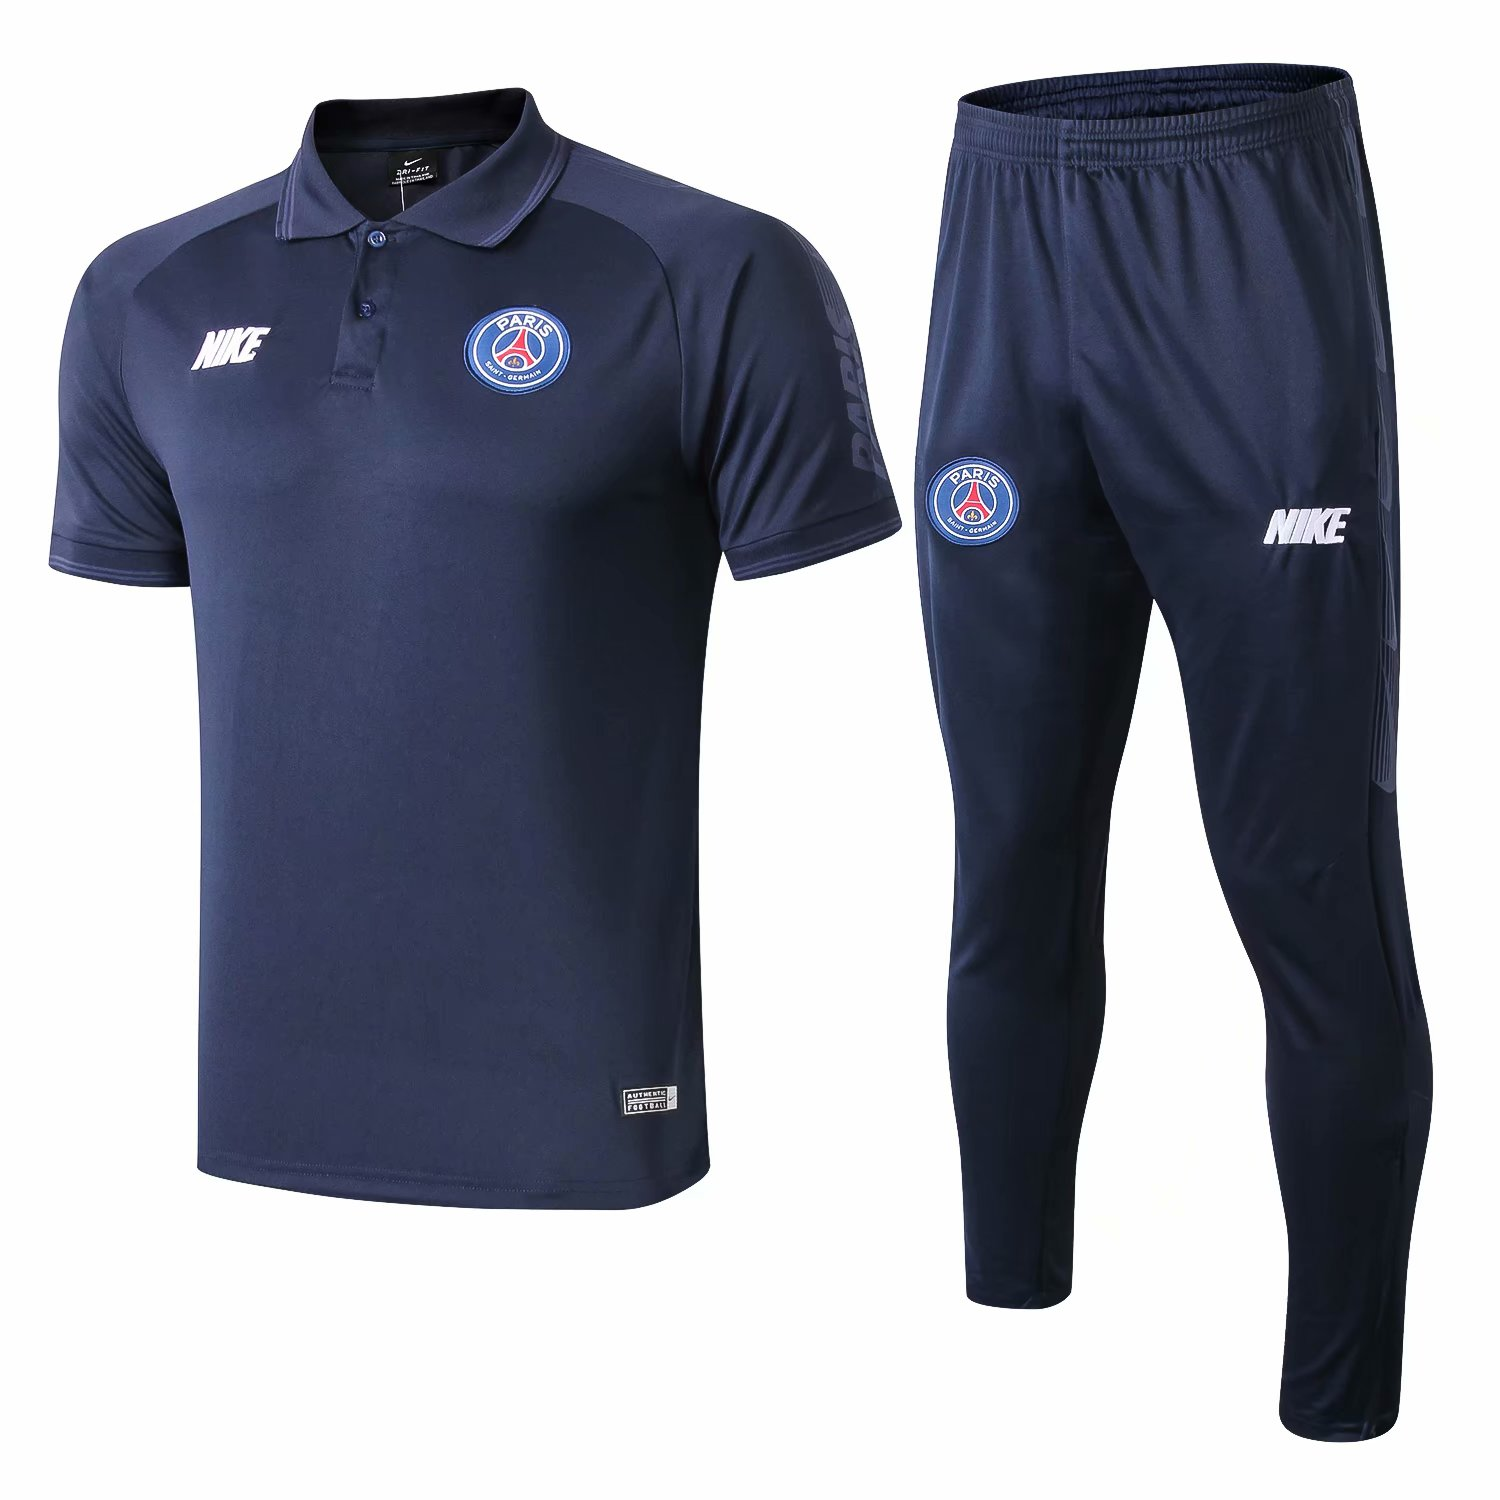 Psg Blue Www PoloPants Training Royal 8 Us29 201920 Suit OkwP0n